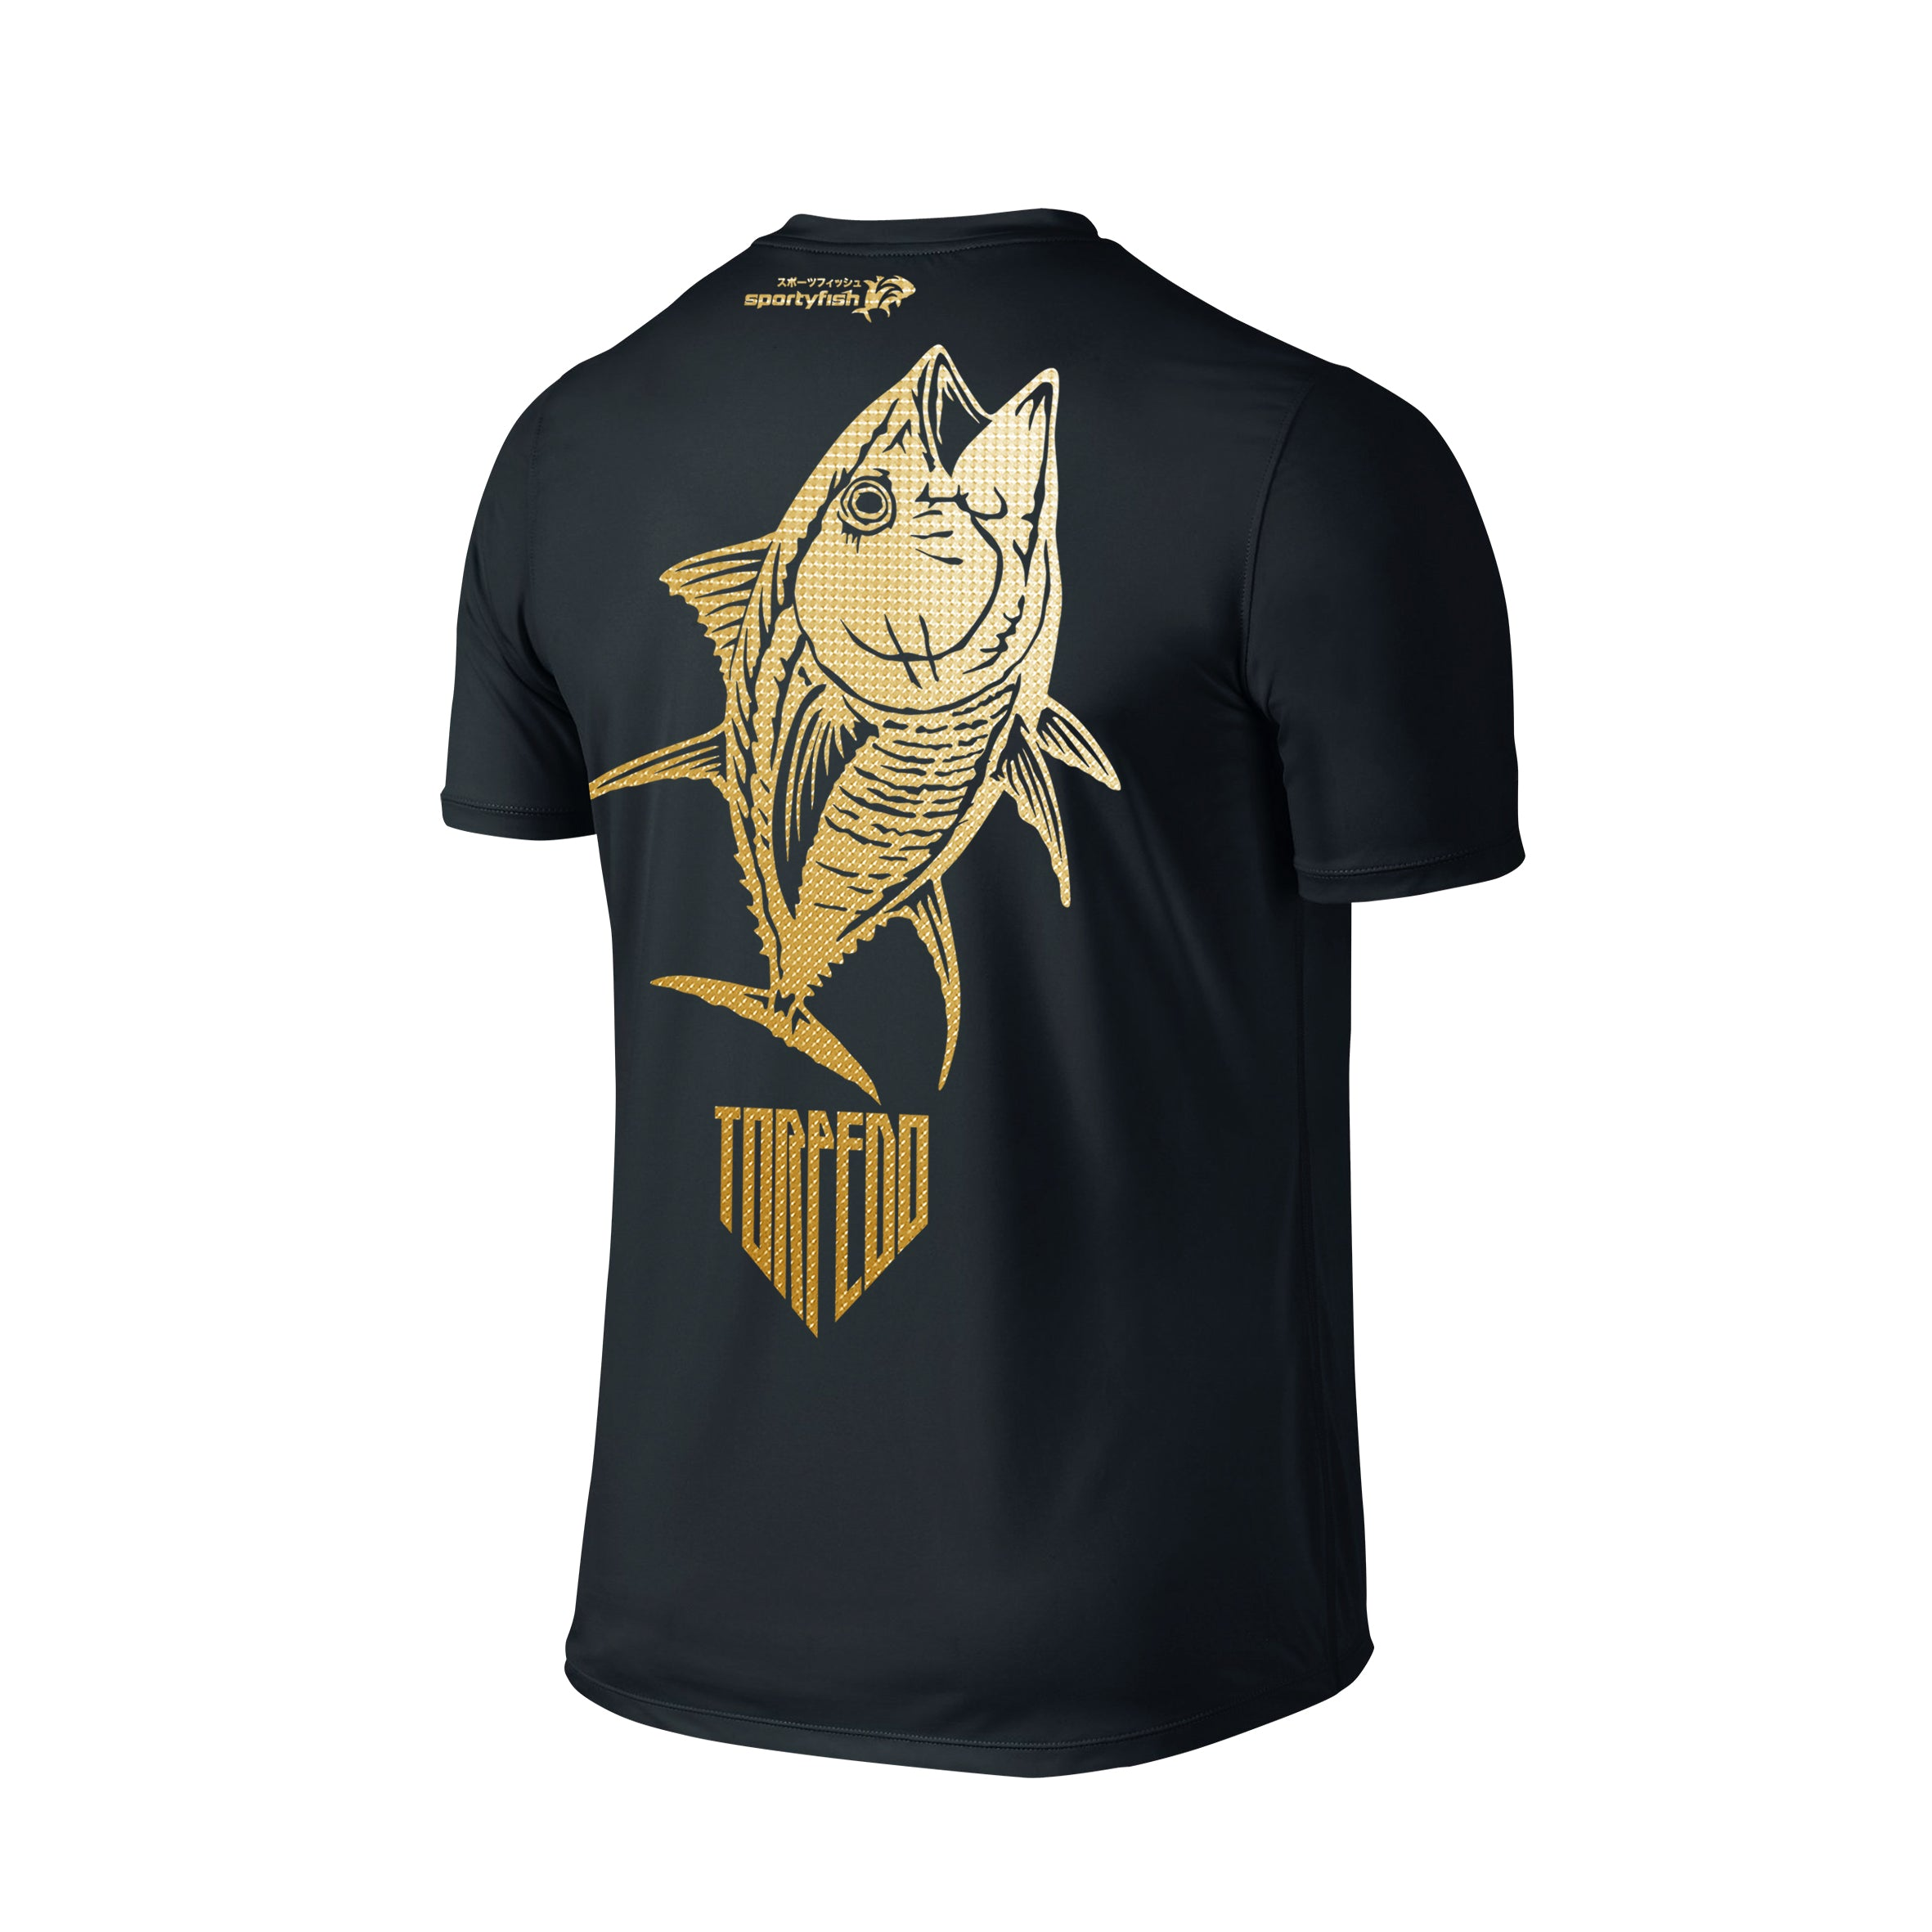 SportyFish Shield Series Classic Black T-shirt(back view) Gold Print: Yellowfin Tuna